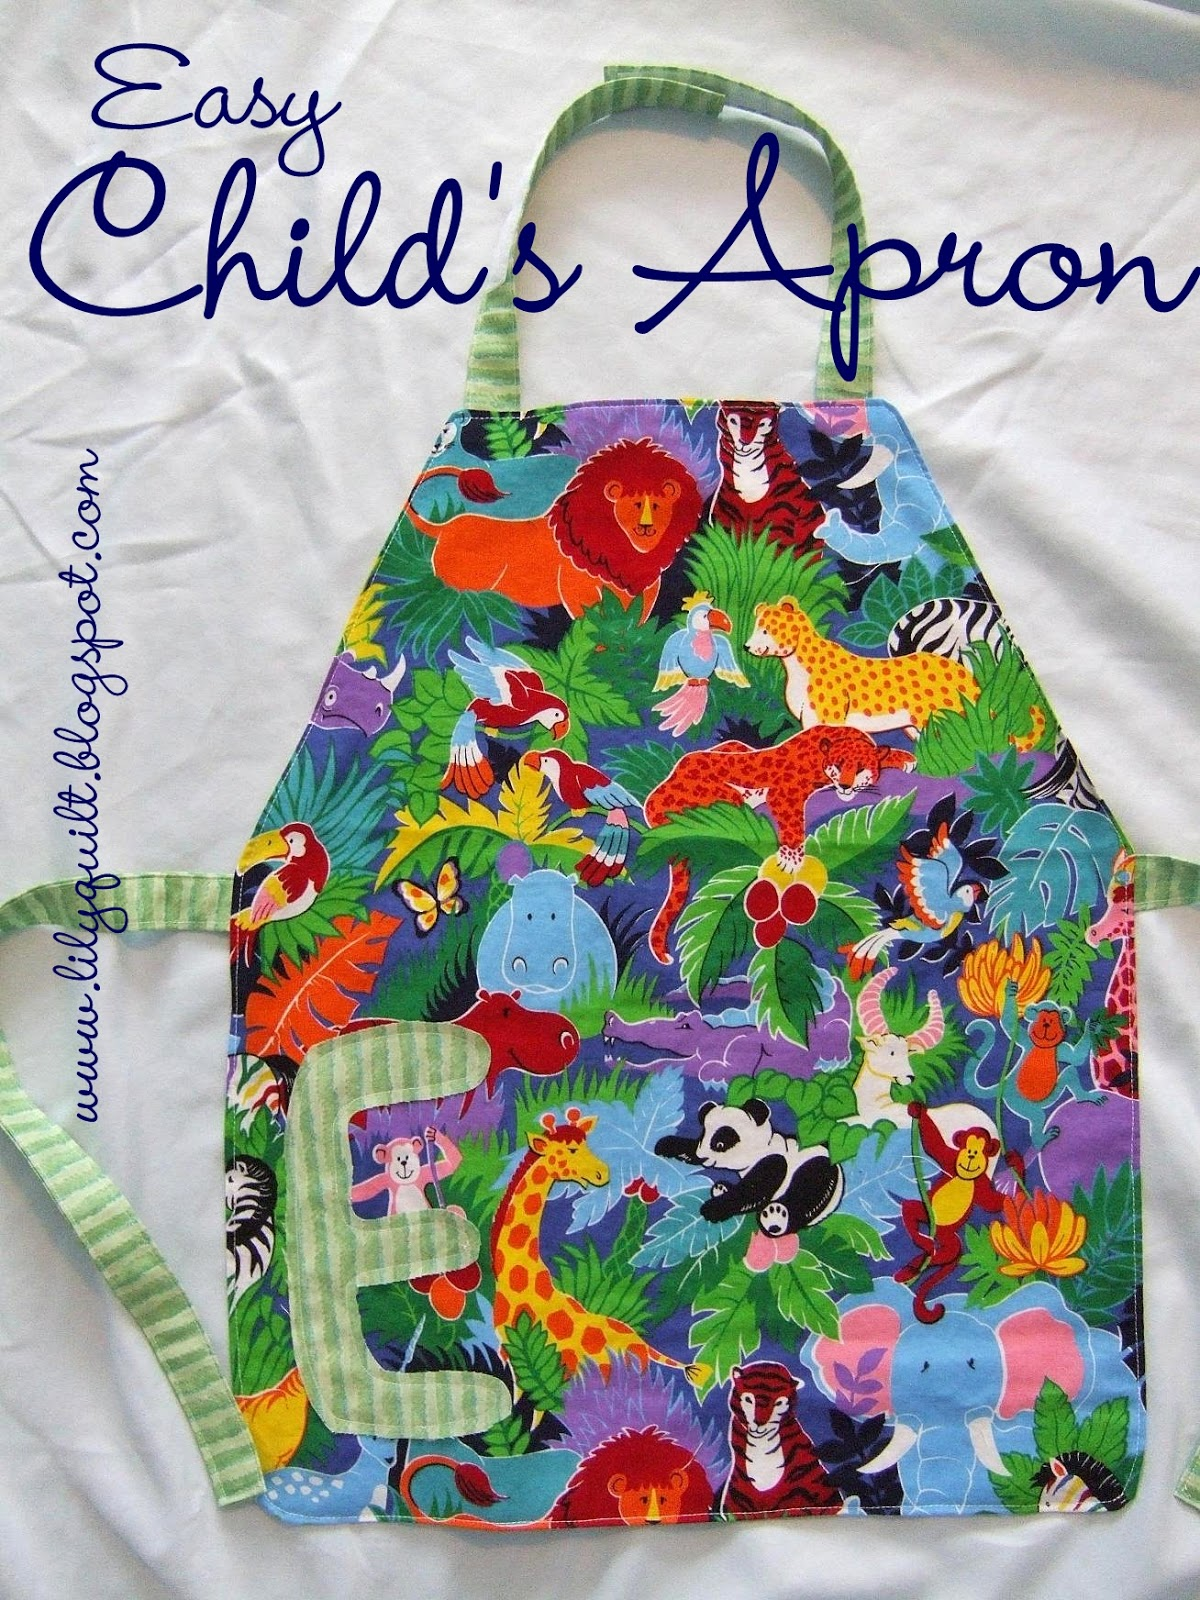 Childs Apron Pattern Amazing Inspiration Design